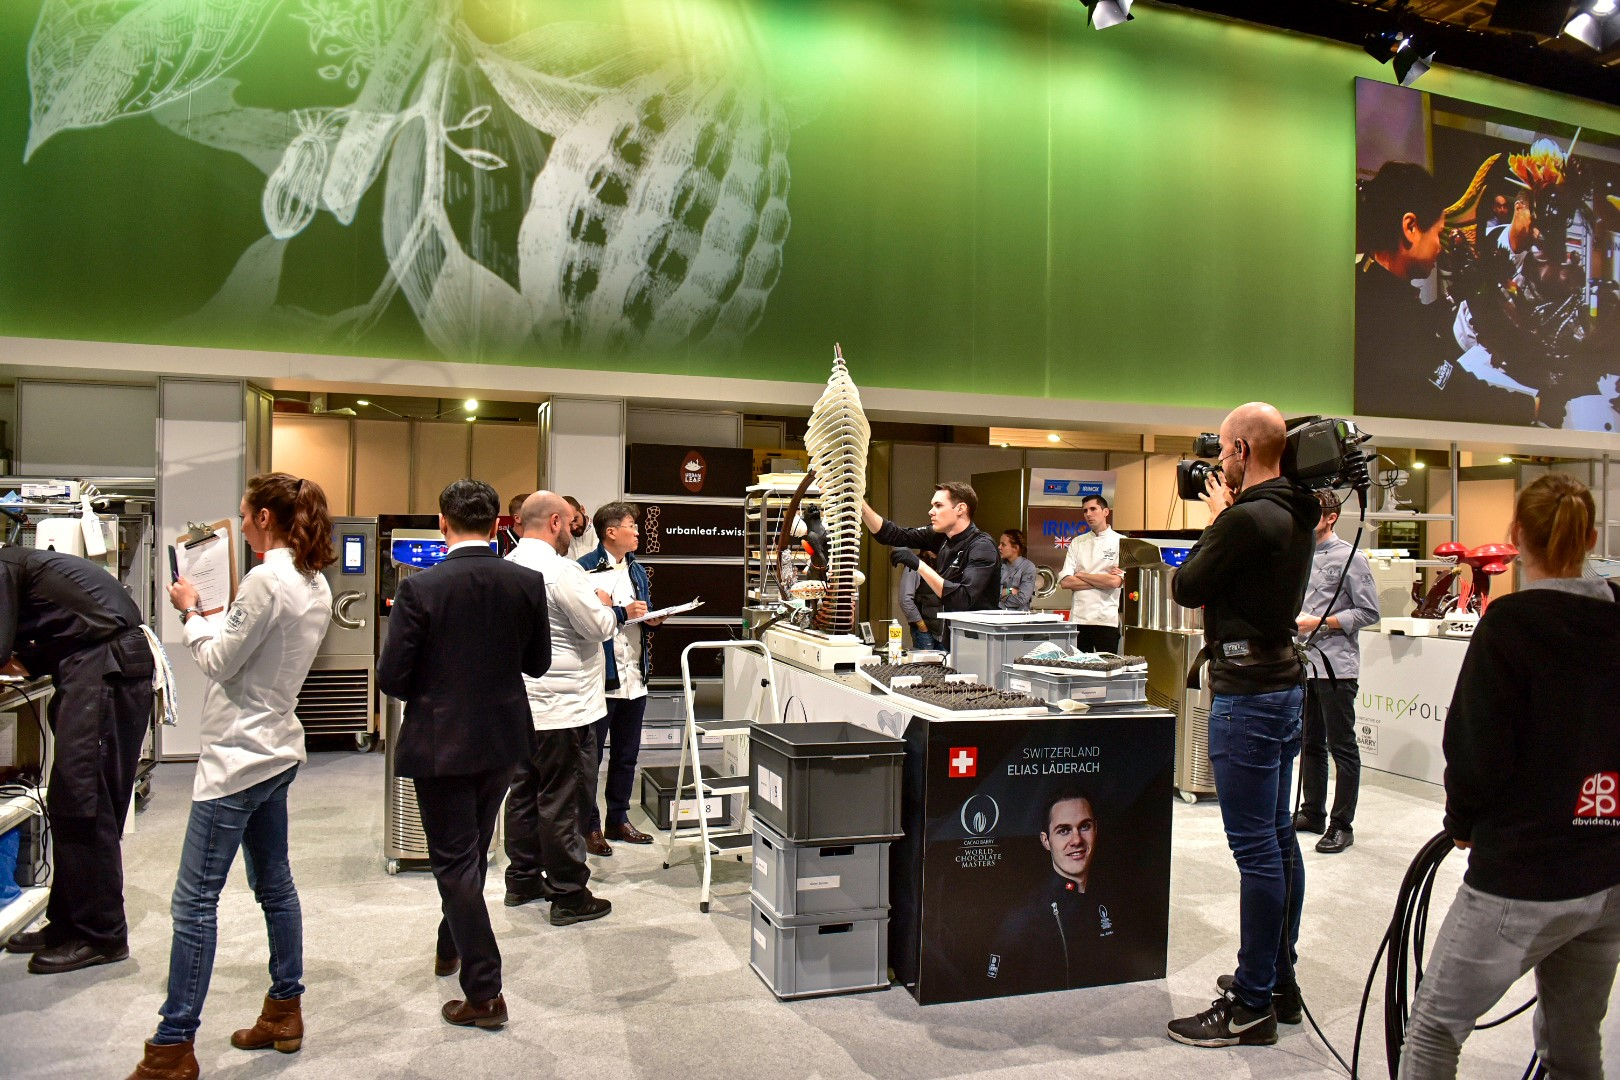 Elias working on his main showpiece surrounded by jury members and camera operators